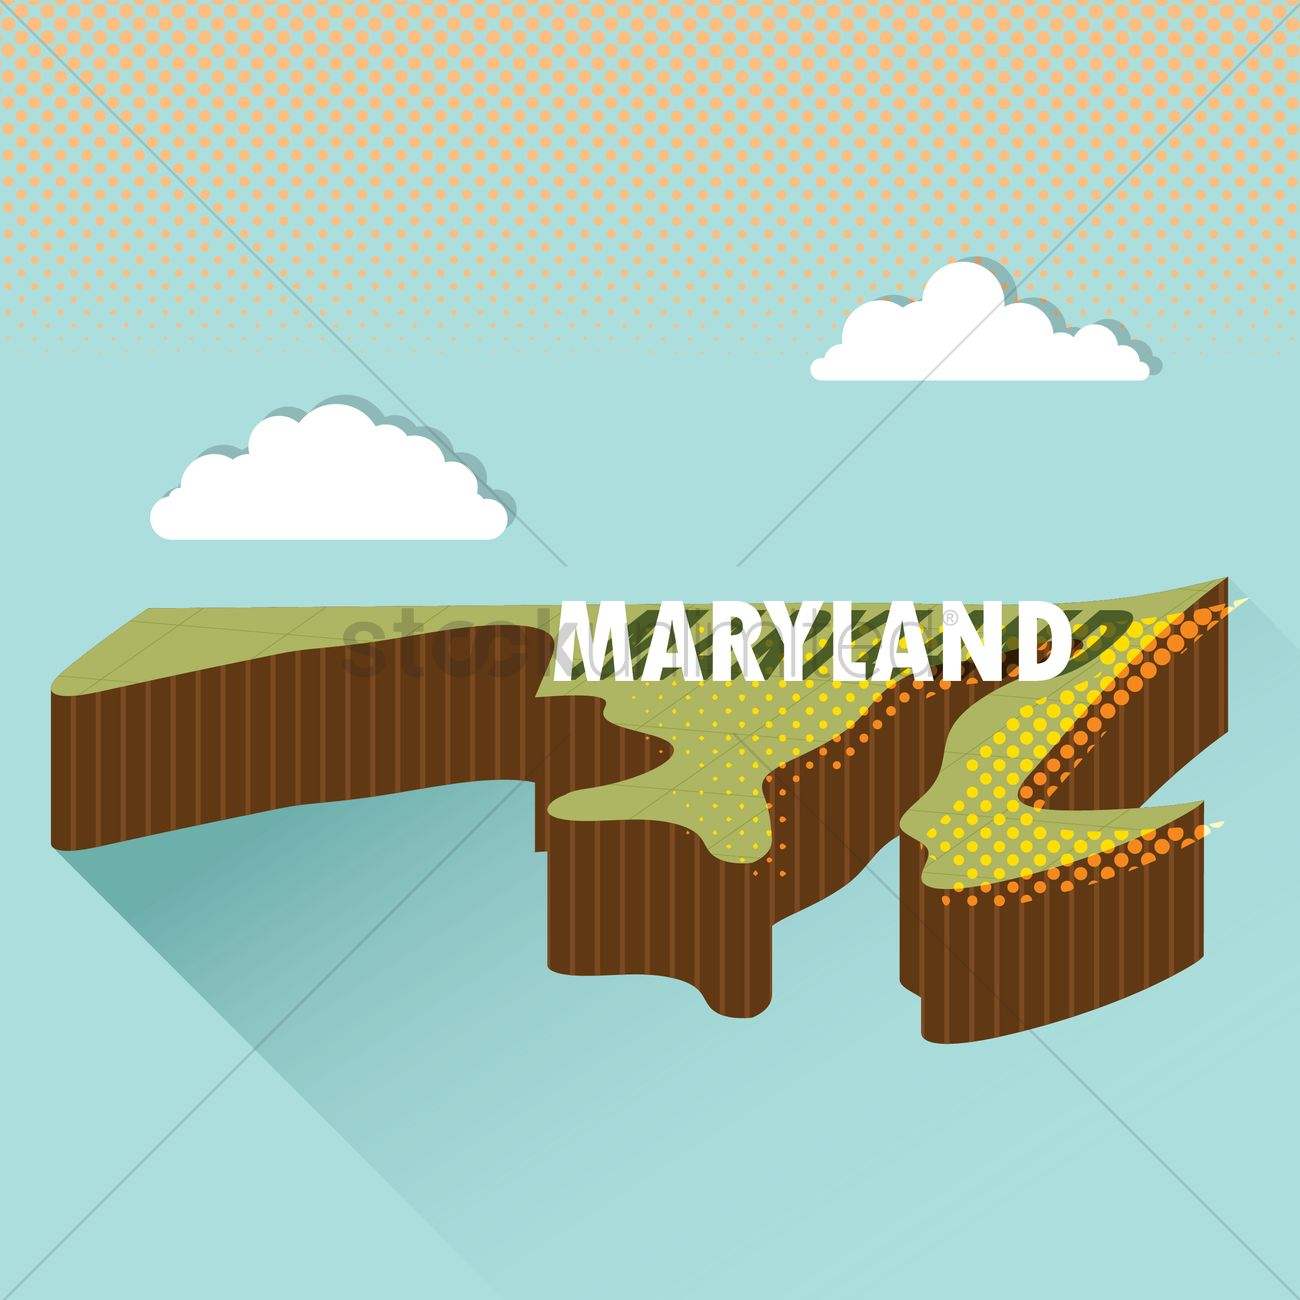 Maryland map Vector Image 1618773 StockUnlimited